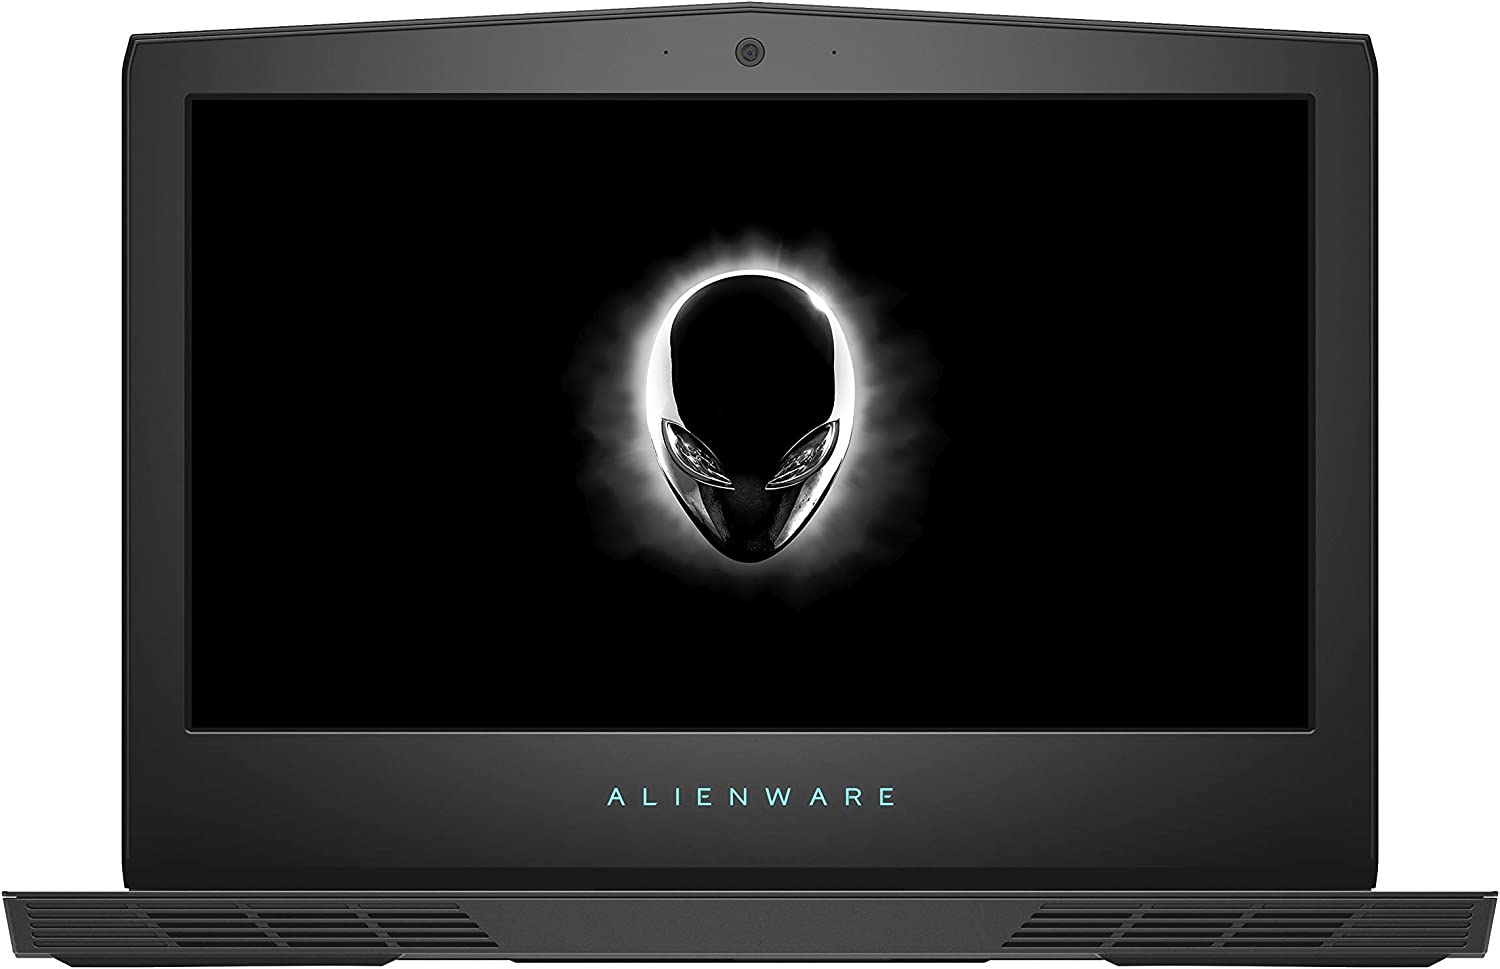 "Alienware 15 15 R4 15.6"" LCD Gaming Notebook - Intel Core i7 (8th Gen) i7-8750H Hexa-core (6 Core) 2.20 GHz - 8 GB DDR4 SDRAM - 256 GB SSD - Windows 10 Home 64-bit (English) - 1920 x 1080 - in-pl"